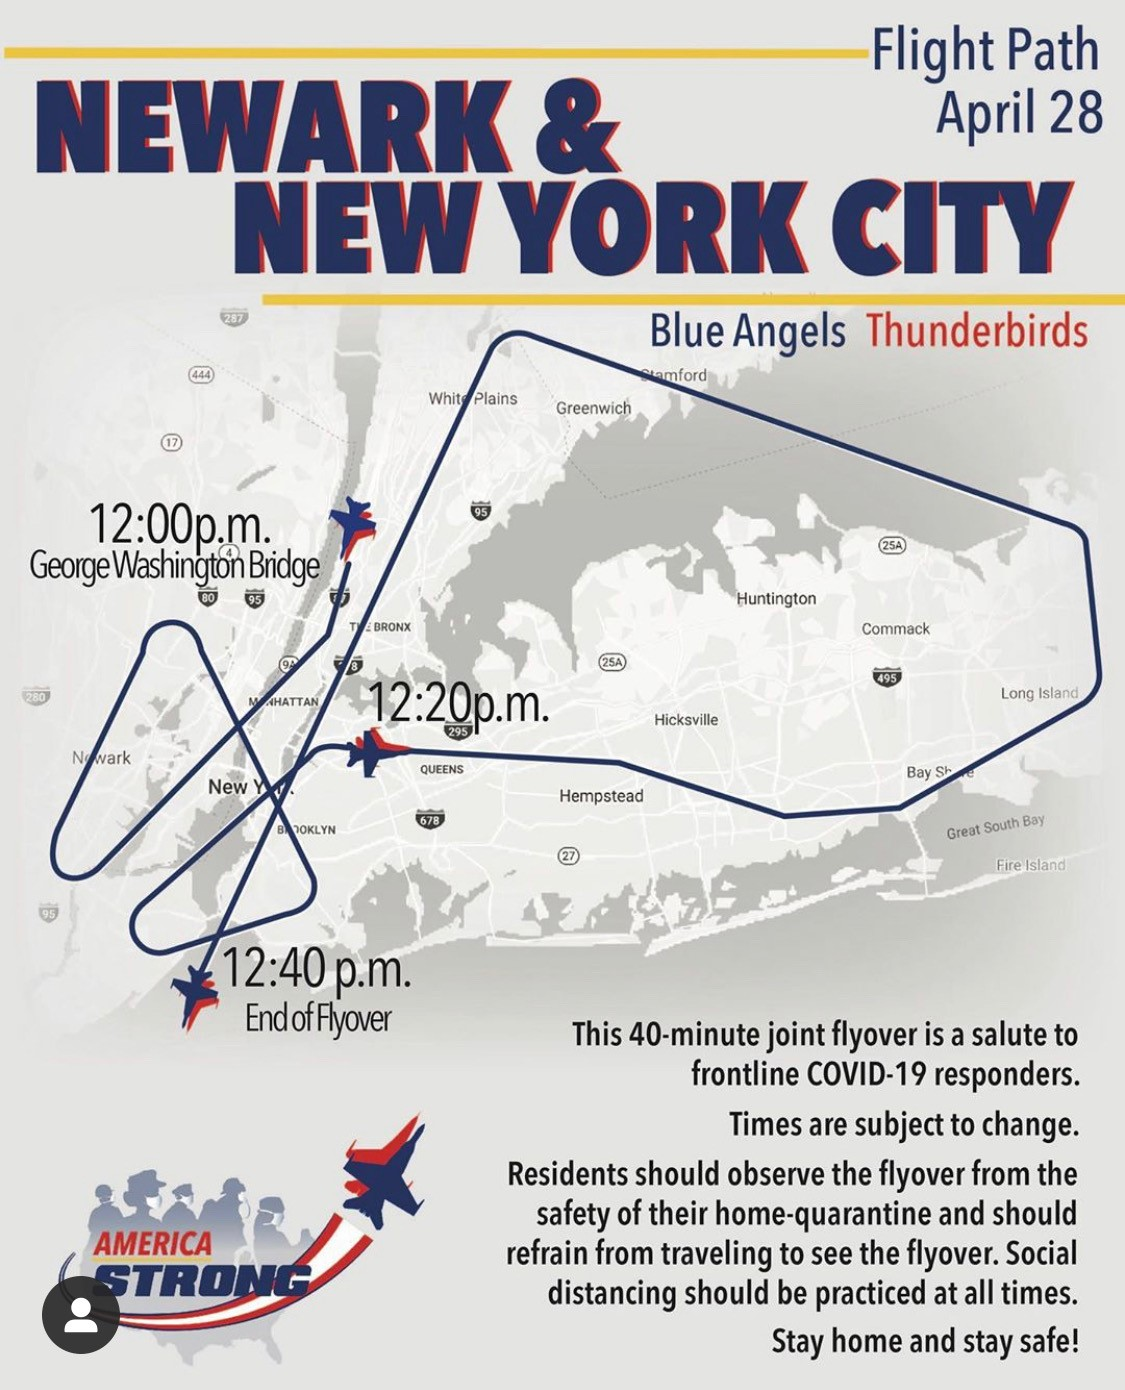 Flyer announcing flight path of fly over air show supporting COVID-19 responders